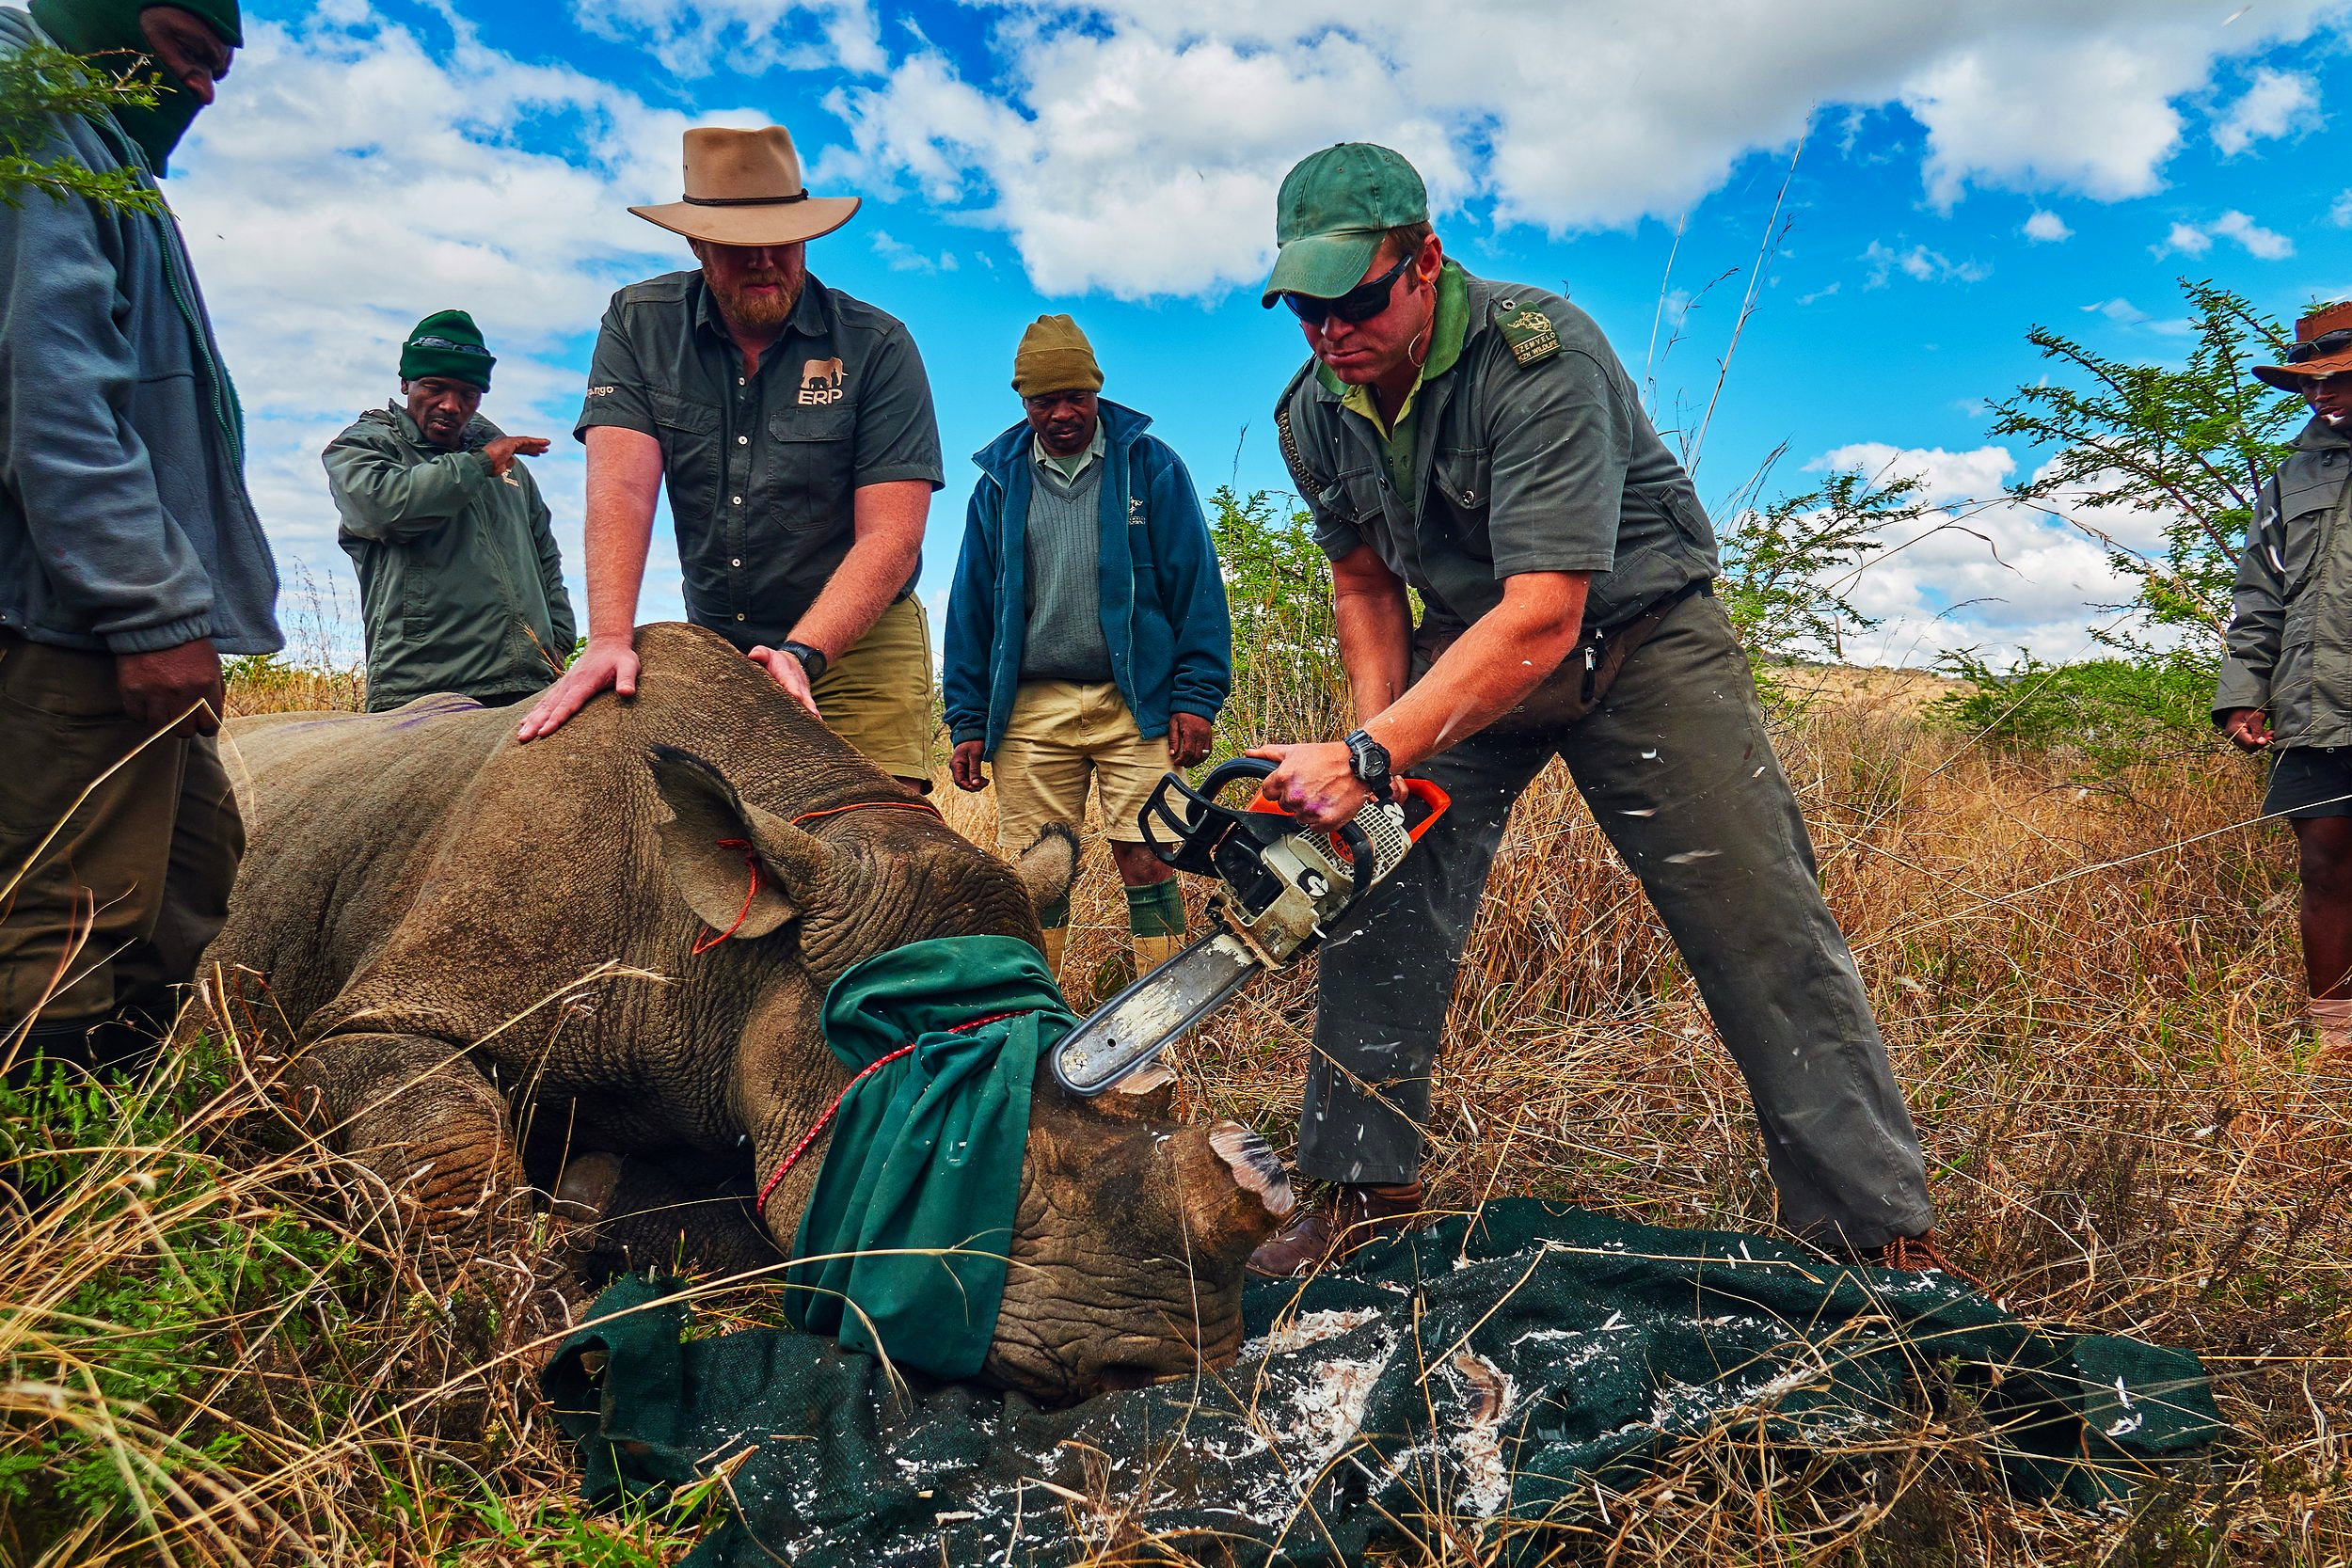 The rhino's horns are cut off with a chainsaw after careful measurements. Every piece of rhino horn is collected and removed to safety. Photo: Daviid Swanepoel